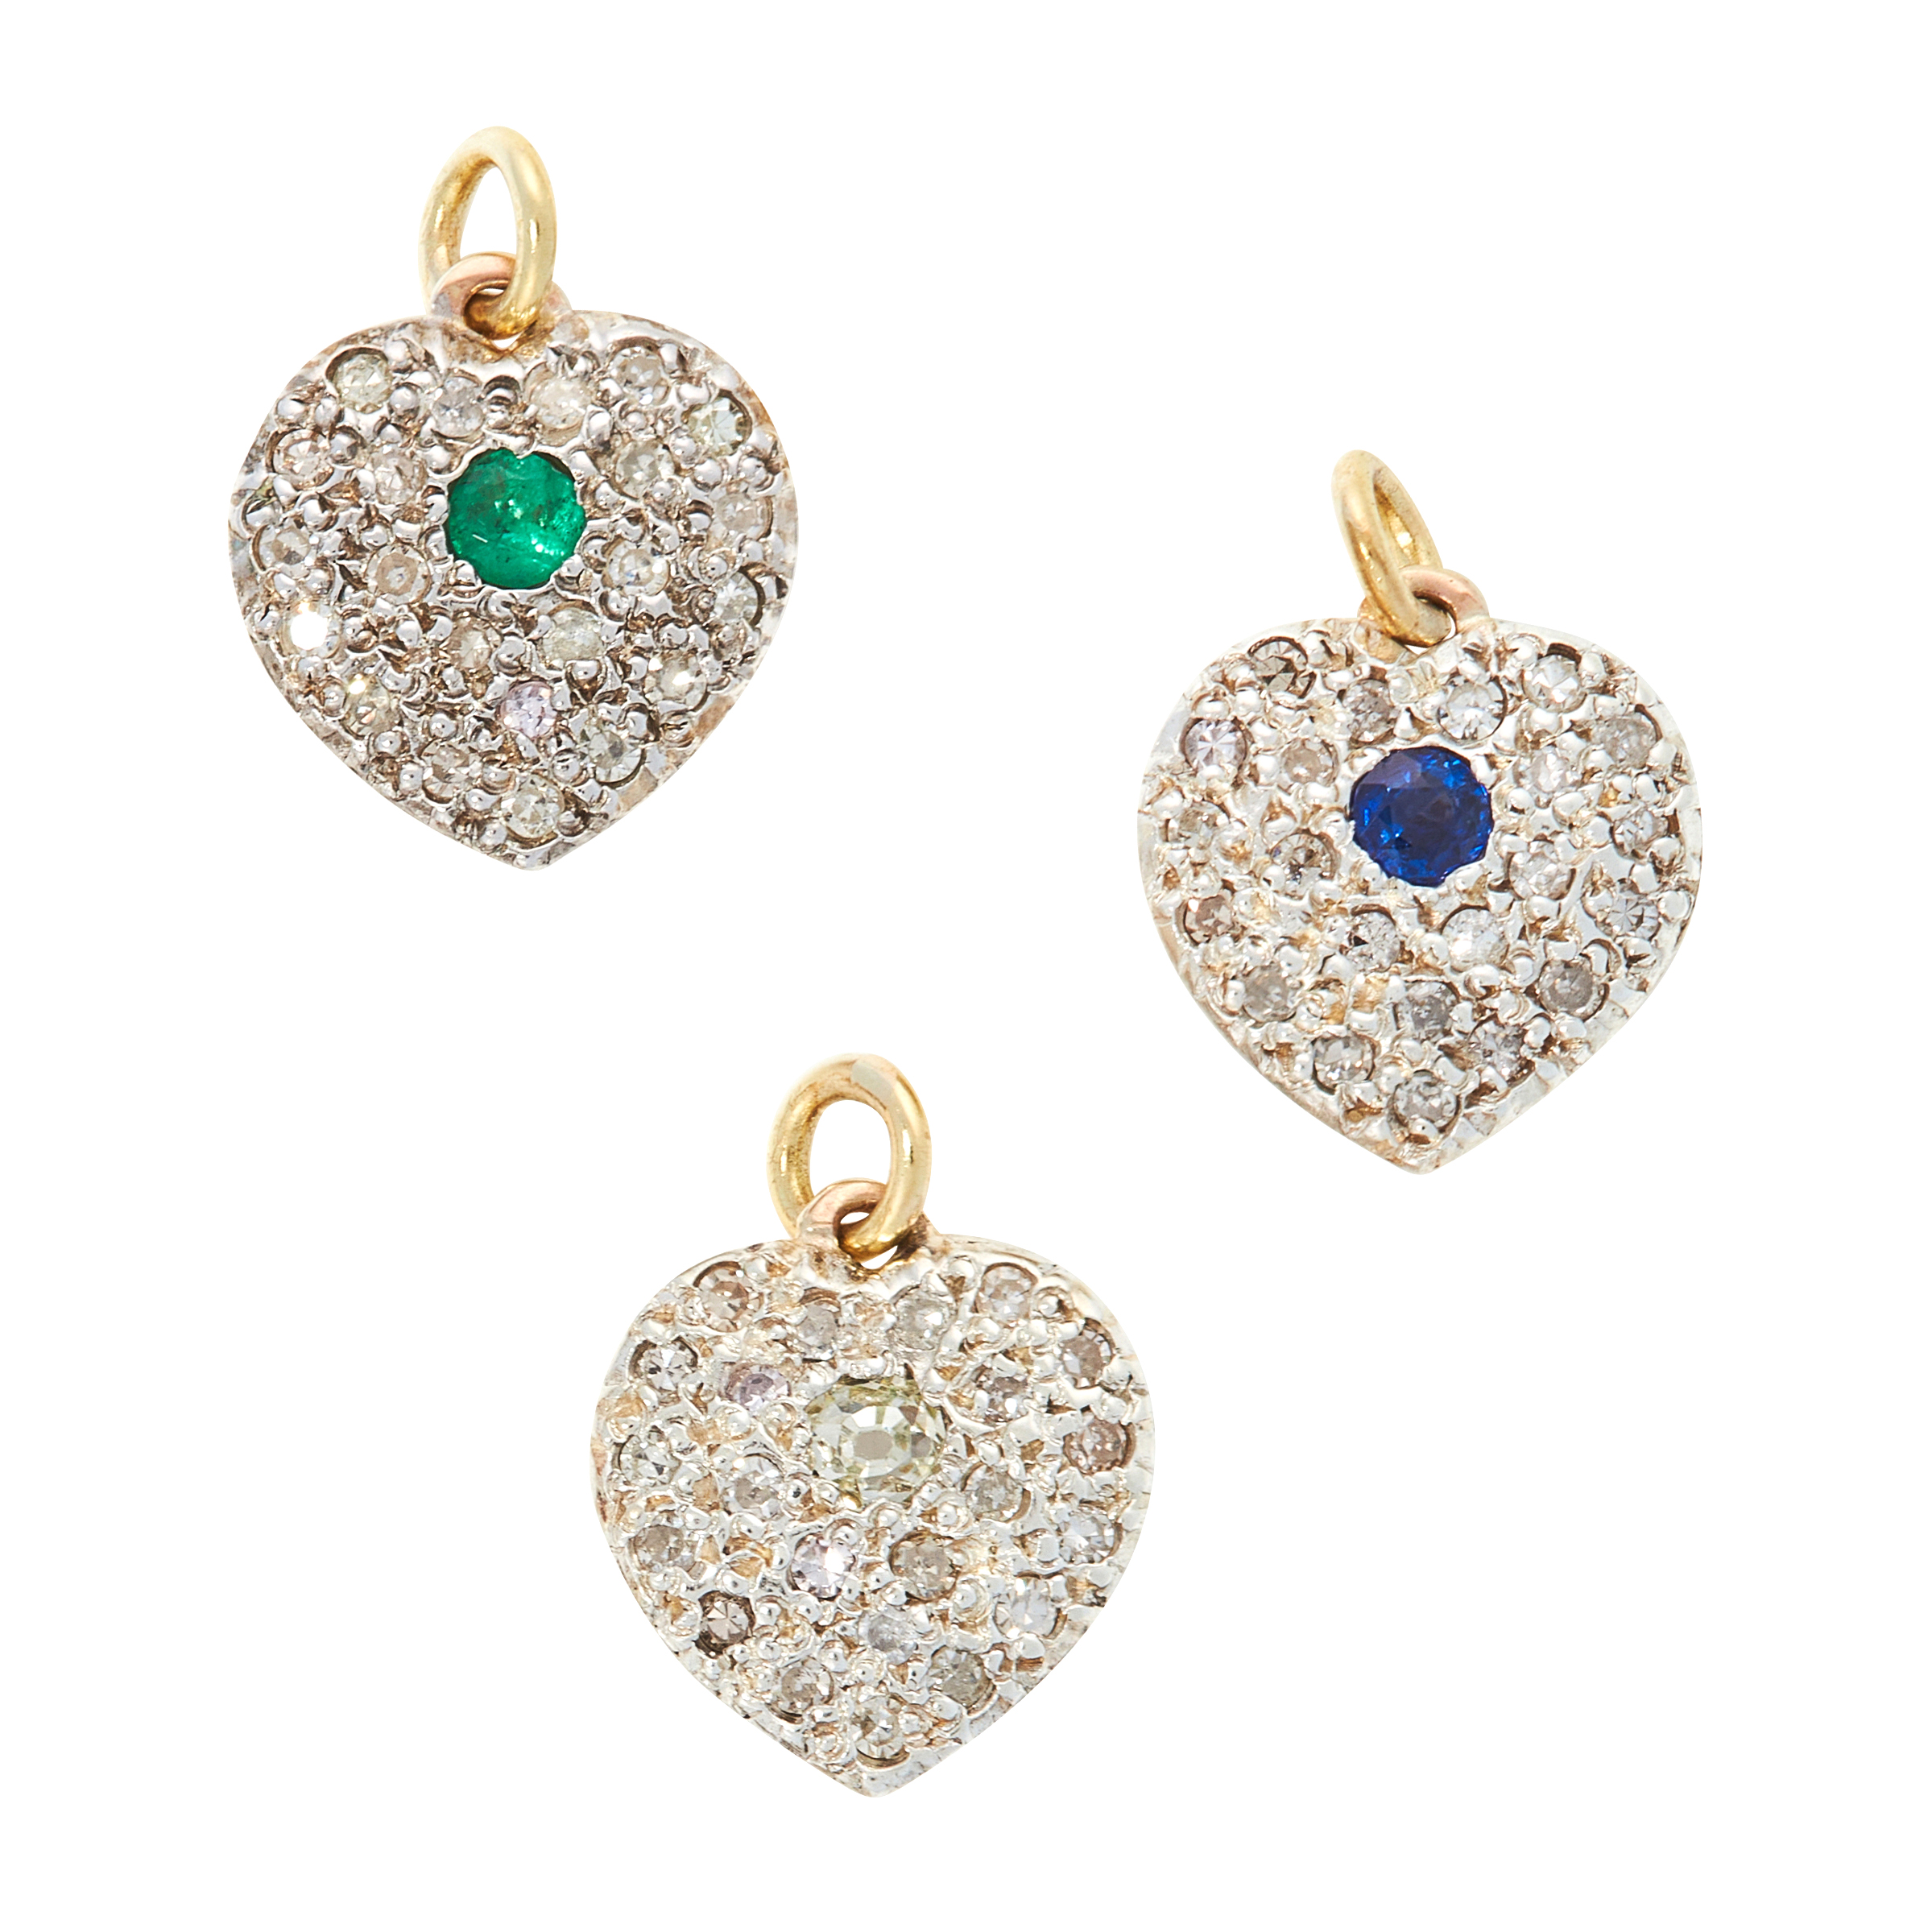 THREE SAPPHIRE, EMERALD AND DIAMOND HEART CHARMS / PENDANTS in yellow gold and silver, each designed